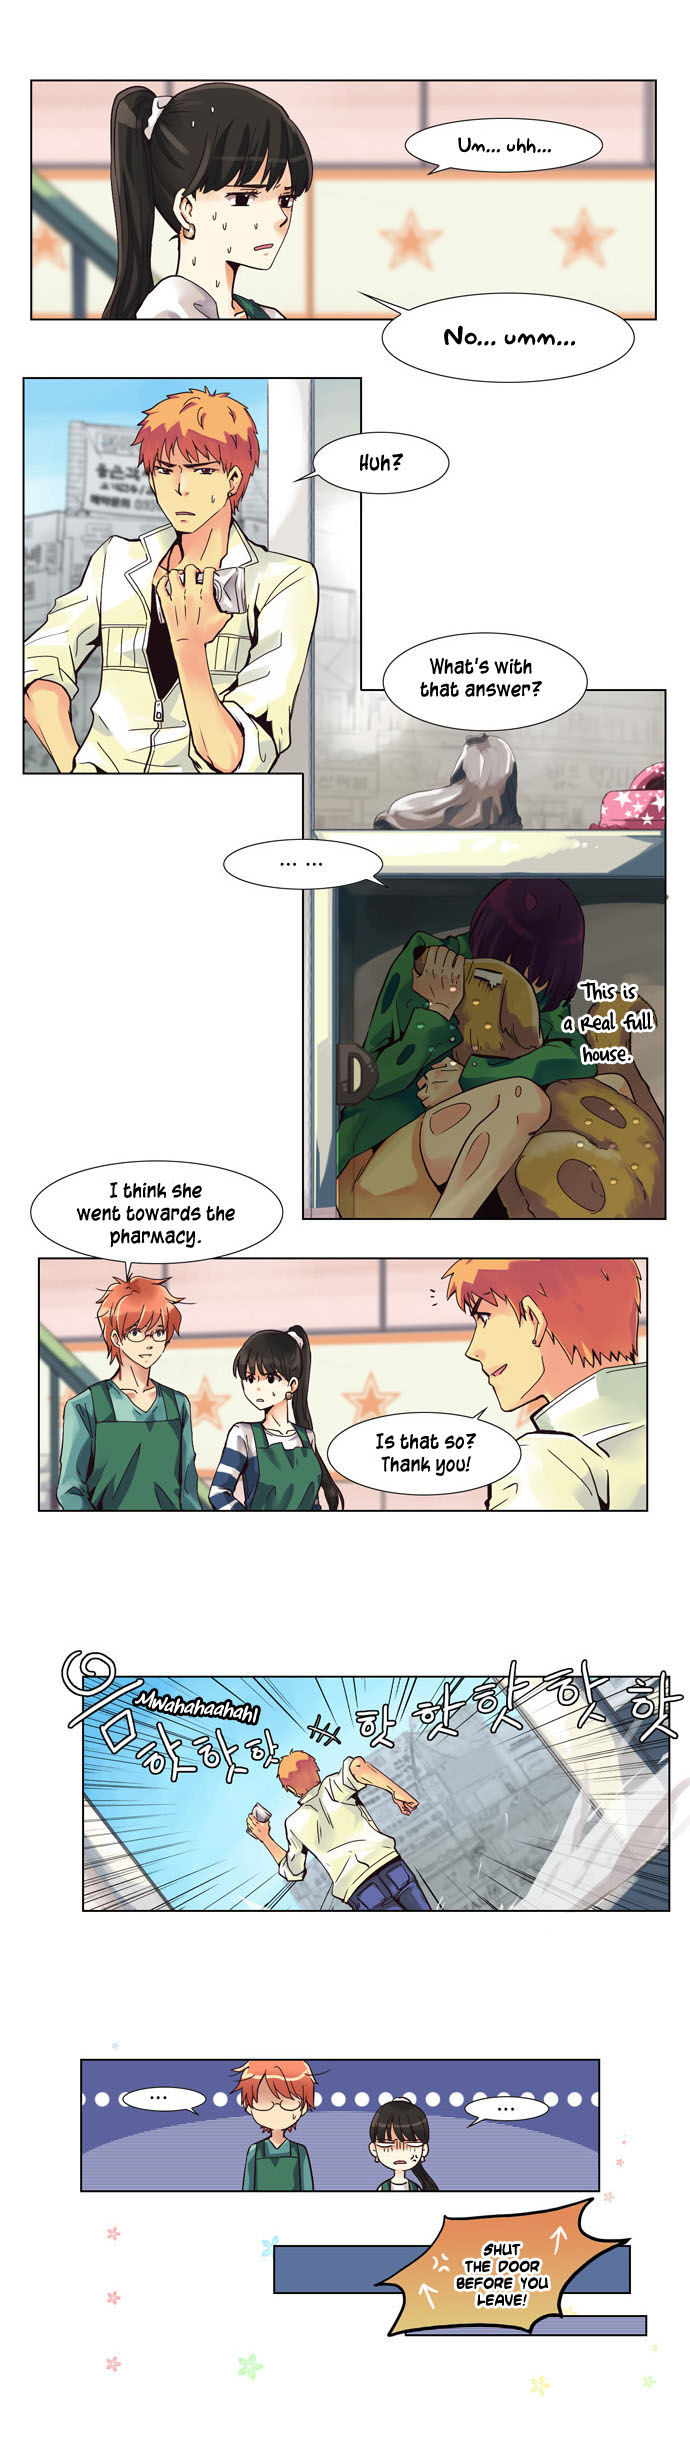 Dear, Only You Don't Know! 3 Page 2